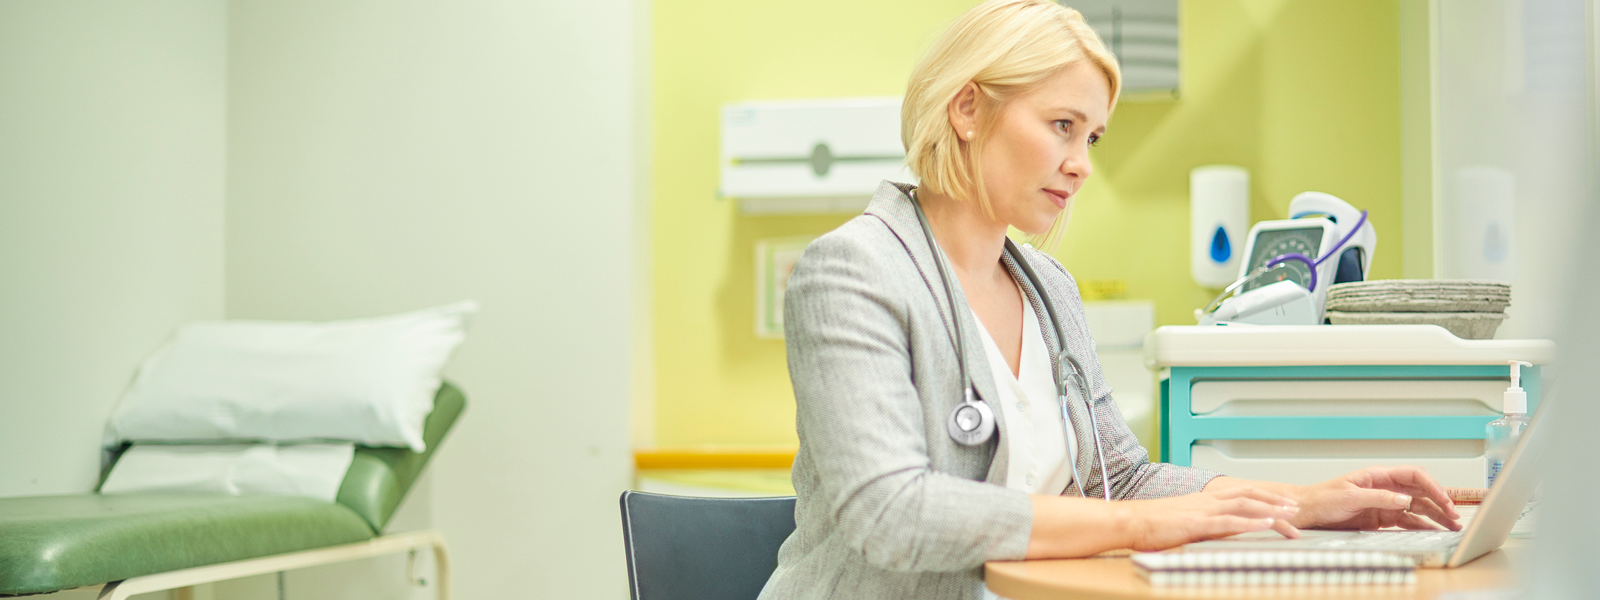 Appraisal and revalidation: your questions answered